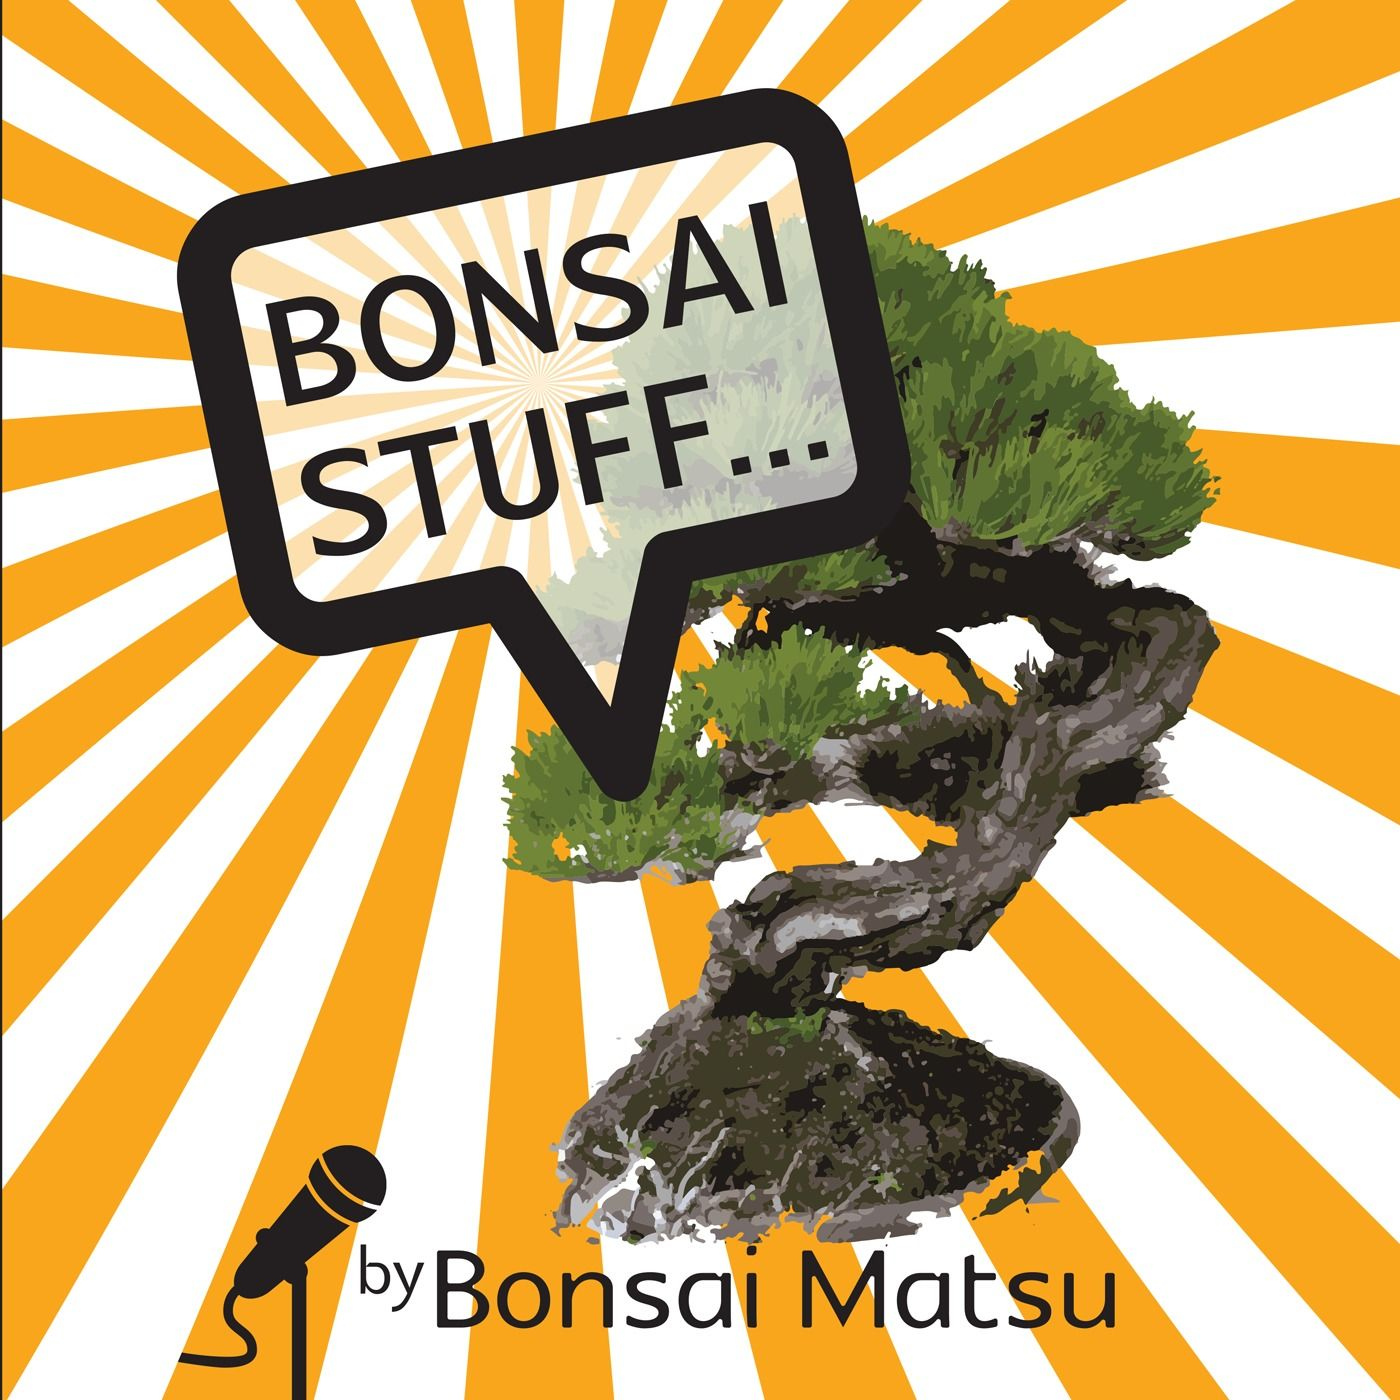 Season 2 Episode 8 – The Japanese Pine that was my Teacher